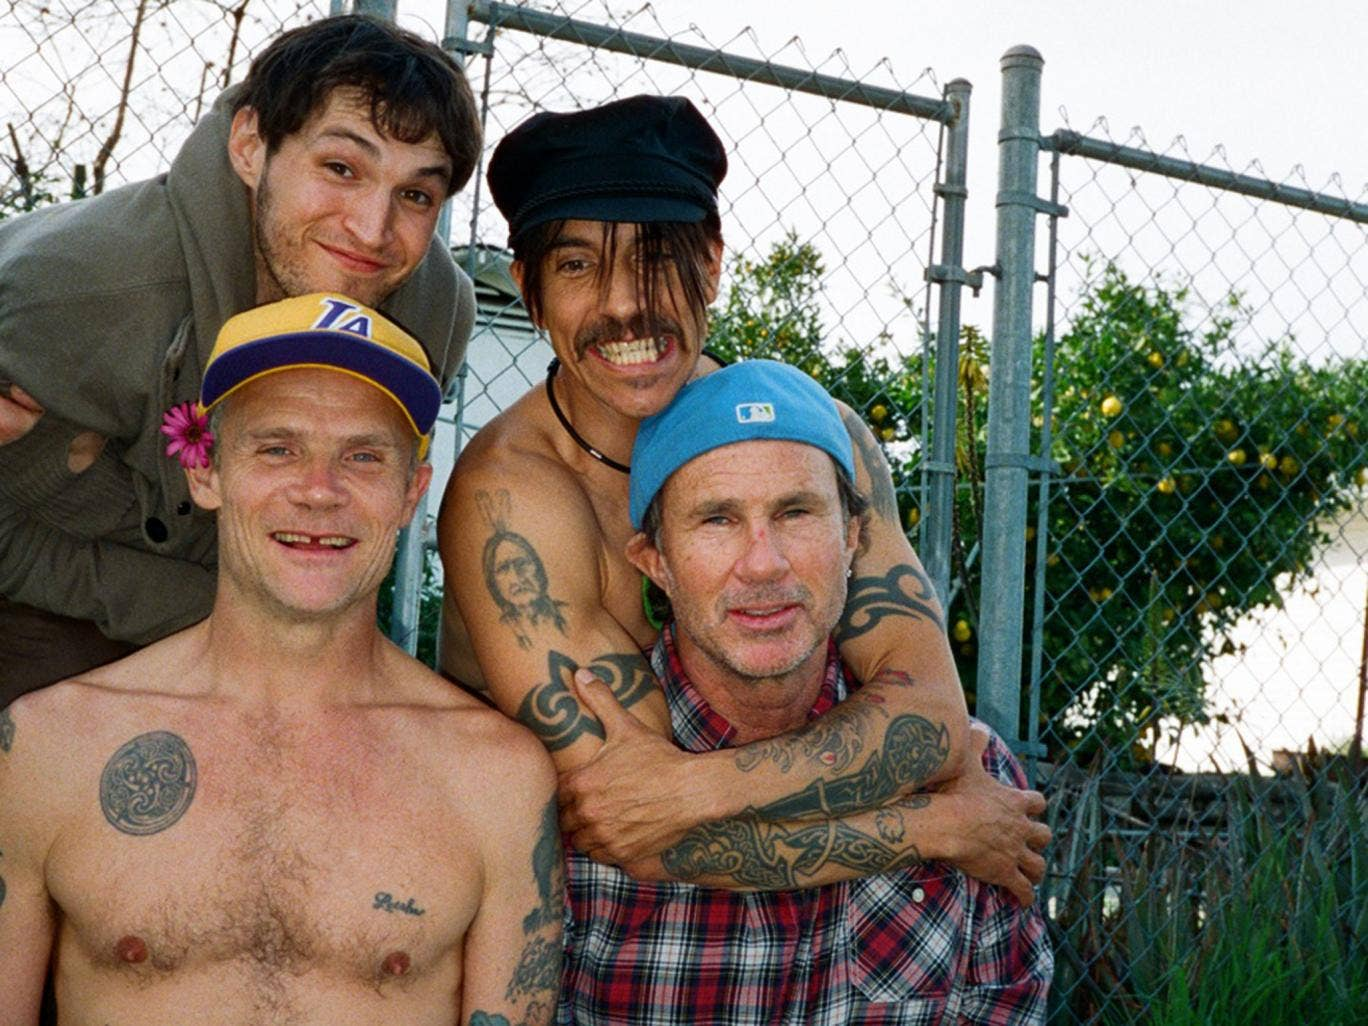 Red Hot Chili Peppers are headlining the Isle of Wight Festival 2014